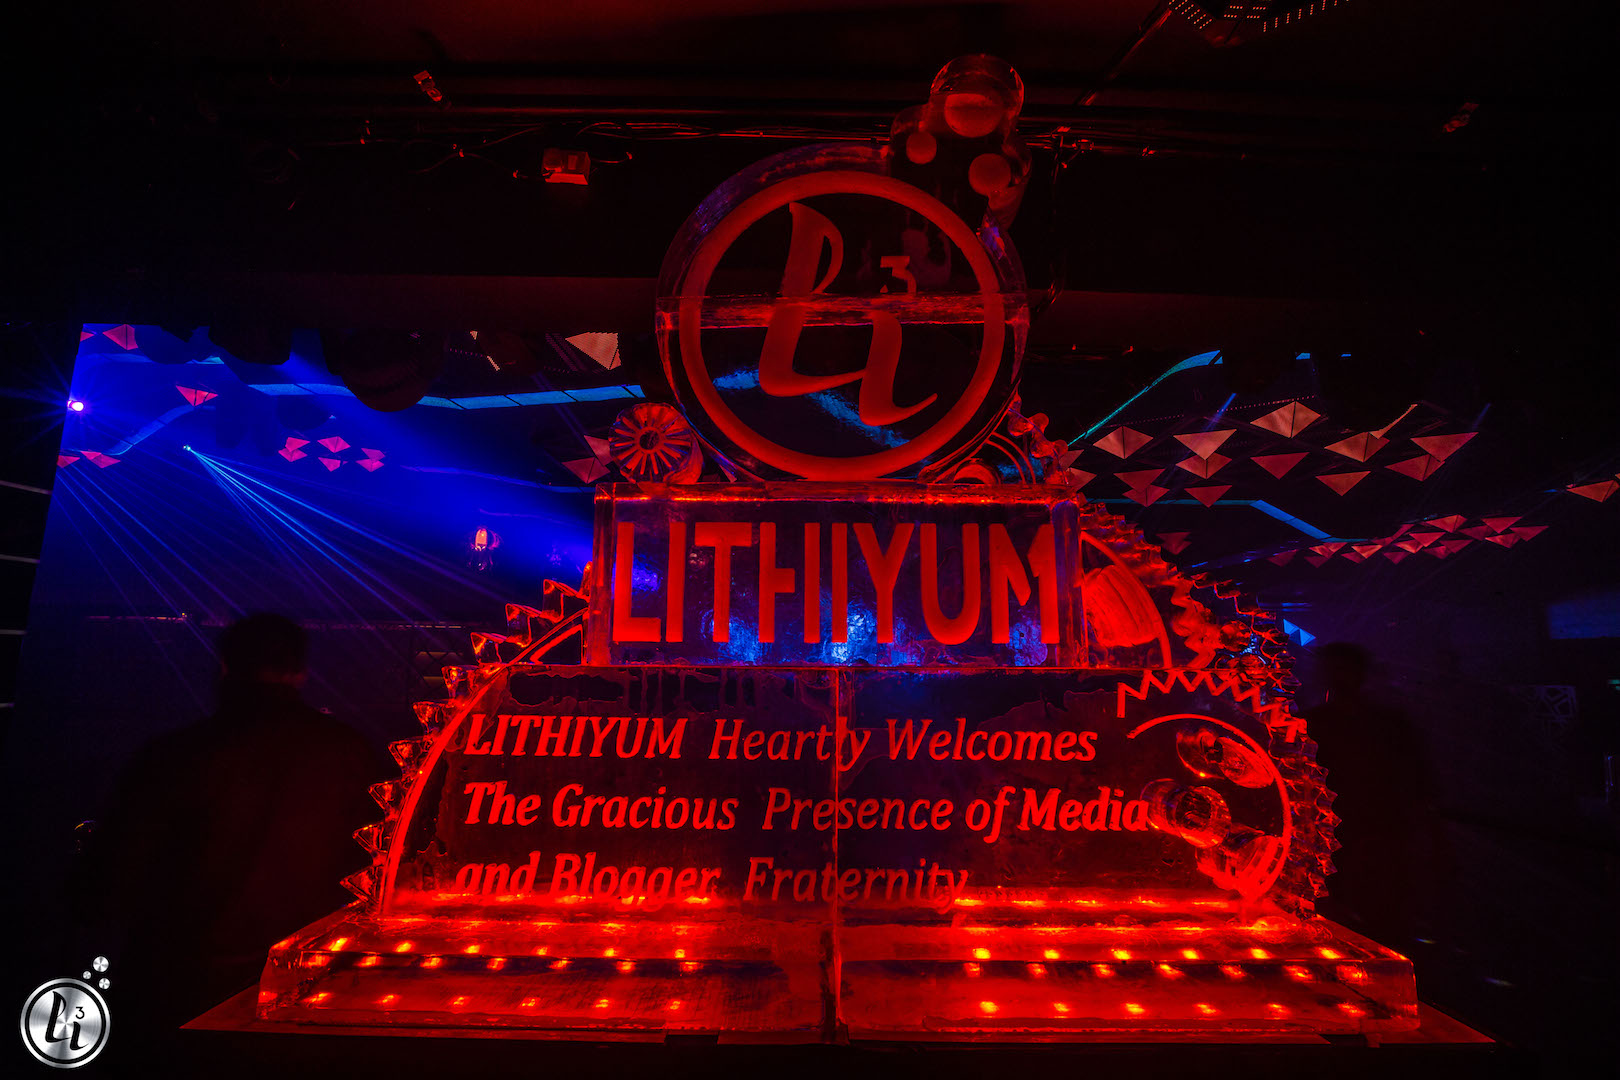 Lithiyum Launches with a Big Bang!